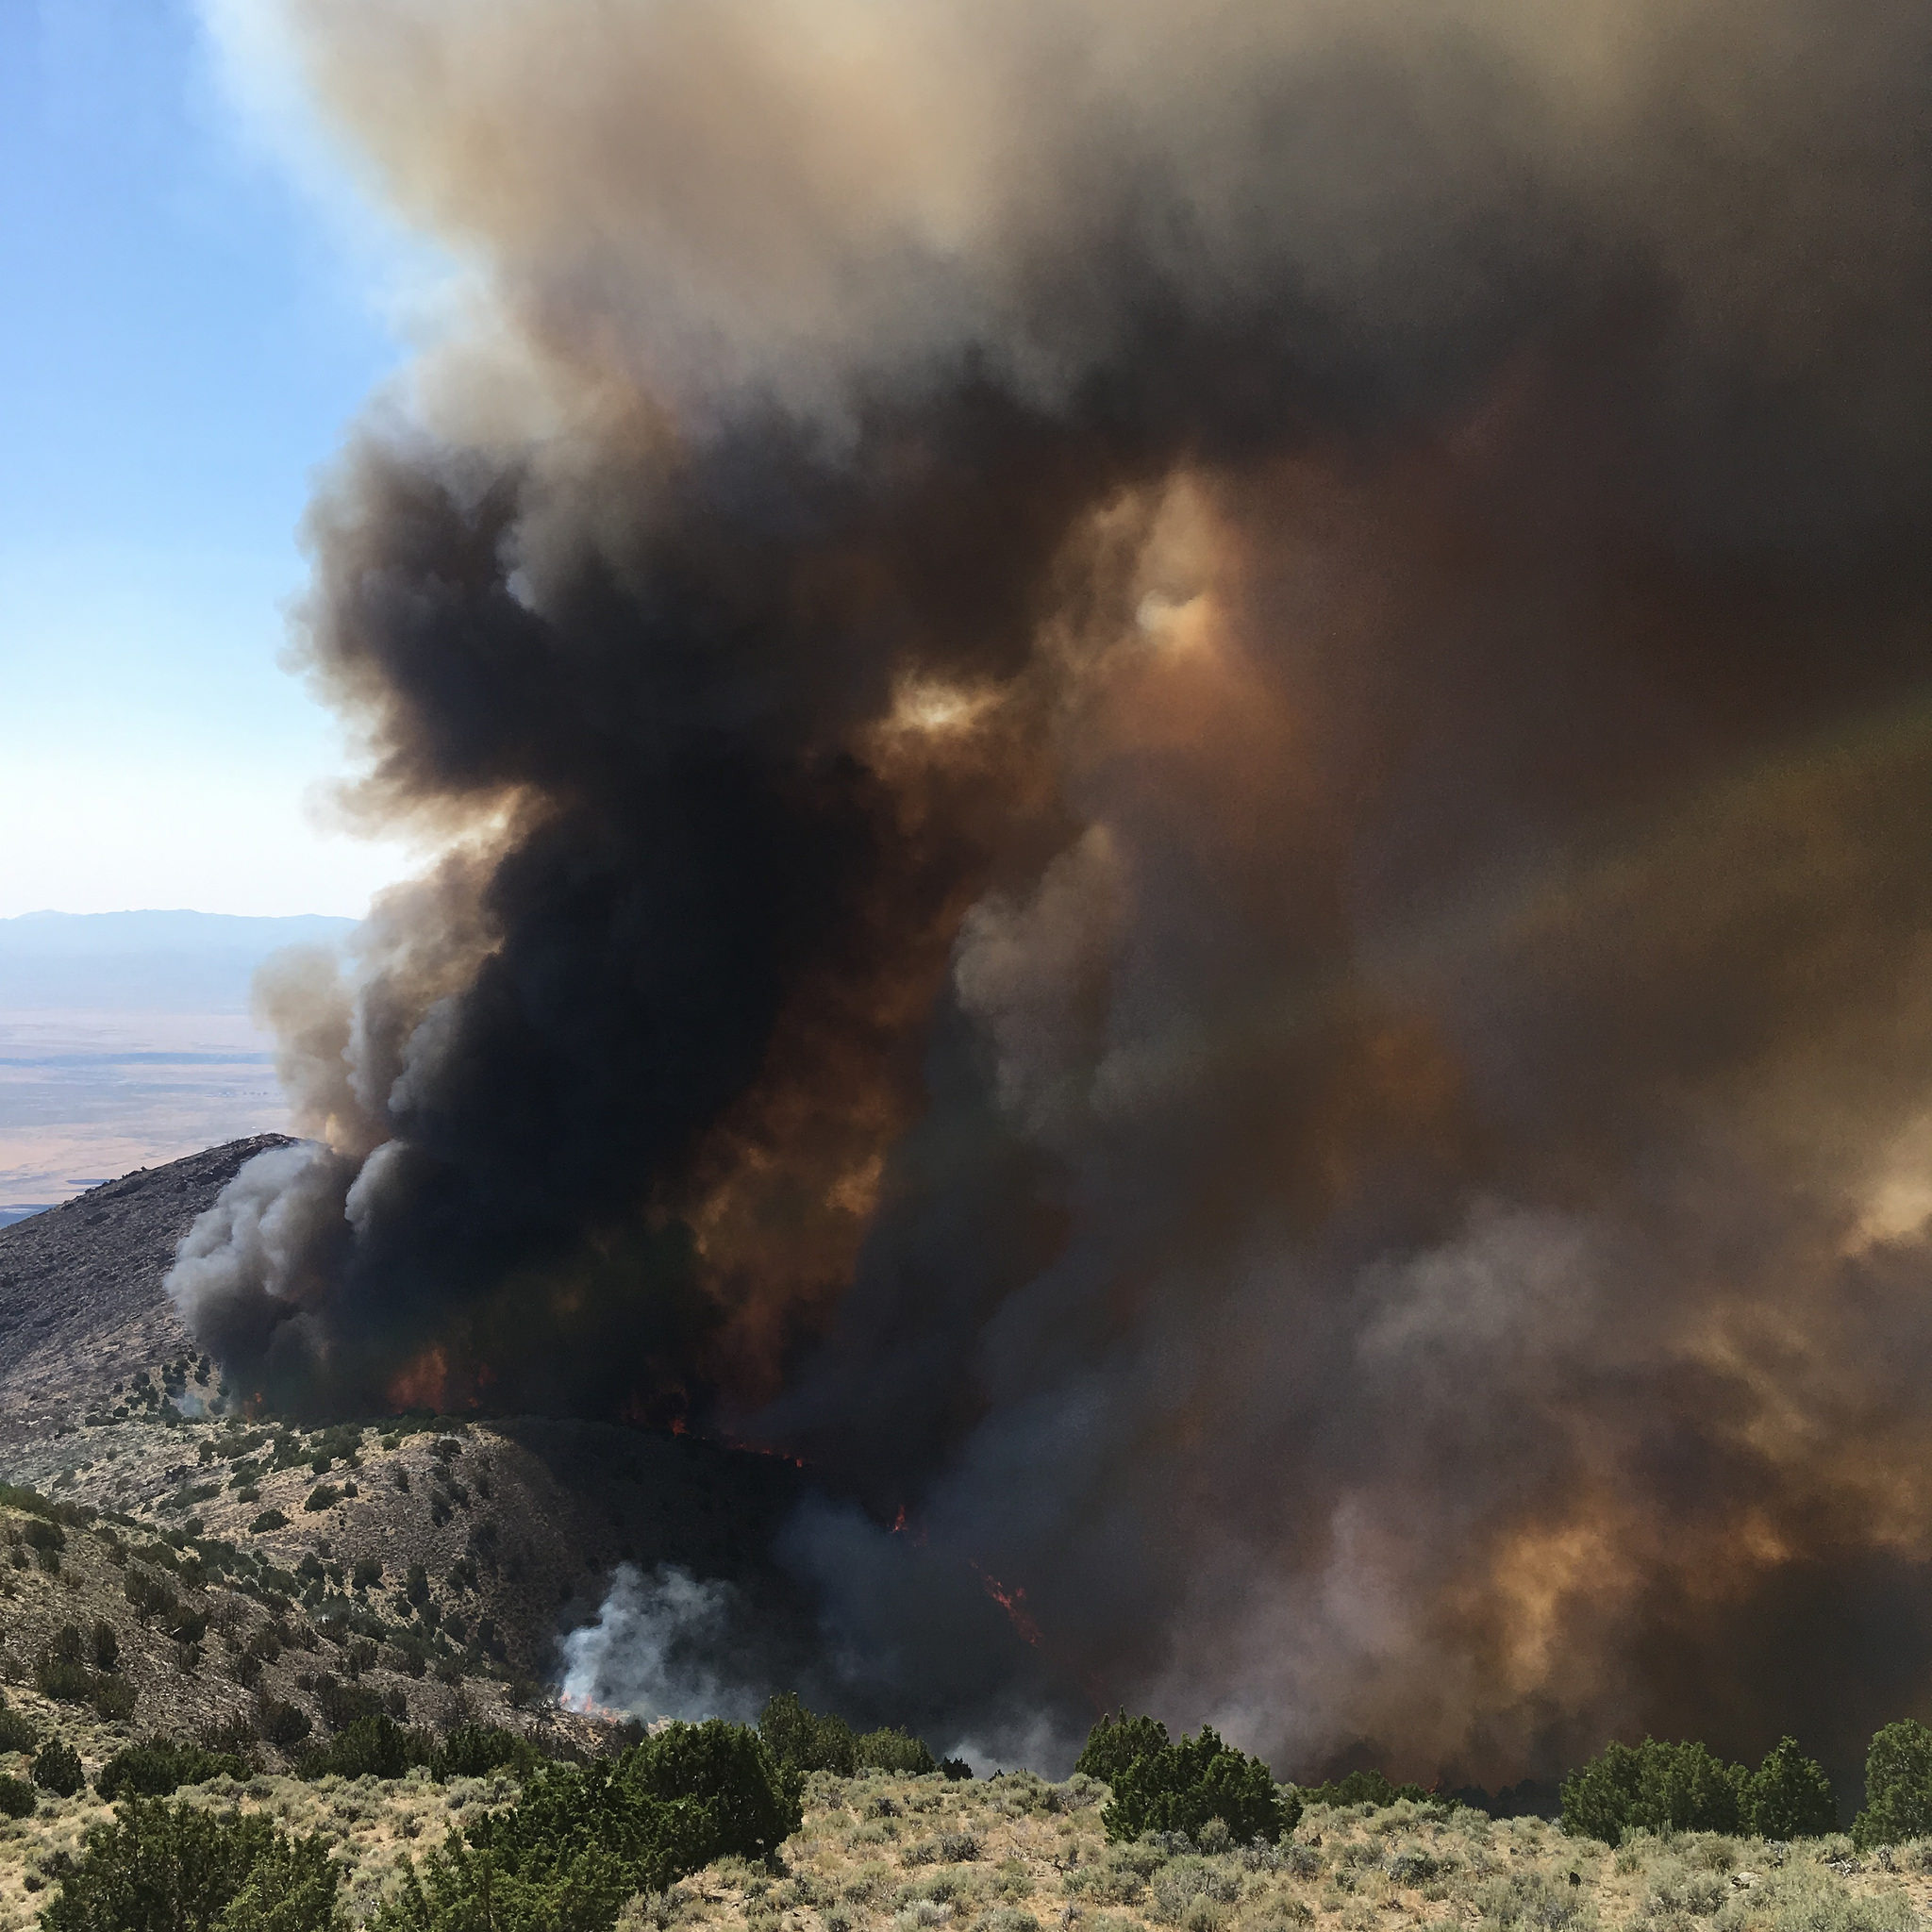 limerick-fire-that-started-july-3-2017-15-miles-northeast-of-lovelock-nevada_35653622051_o